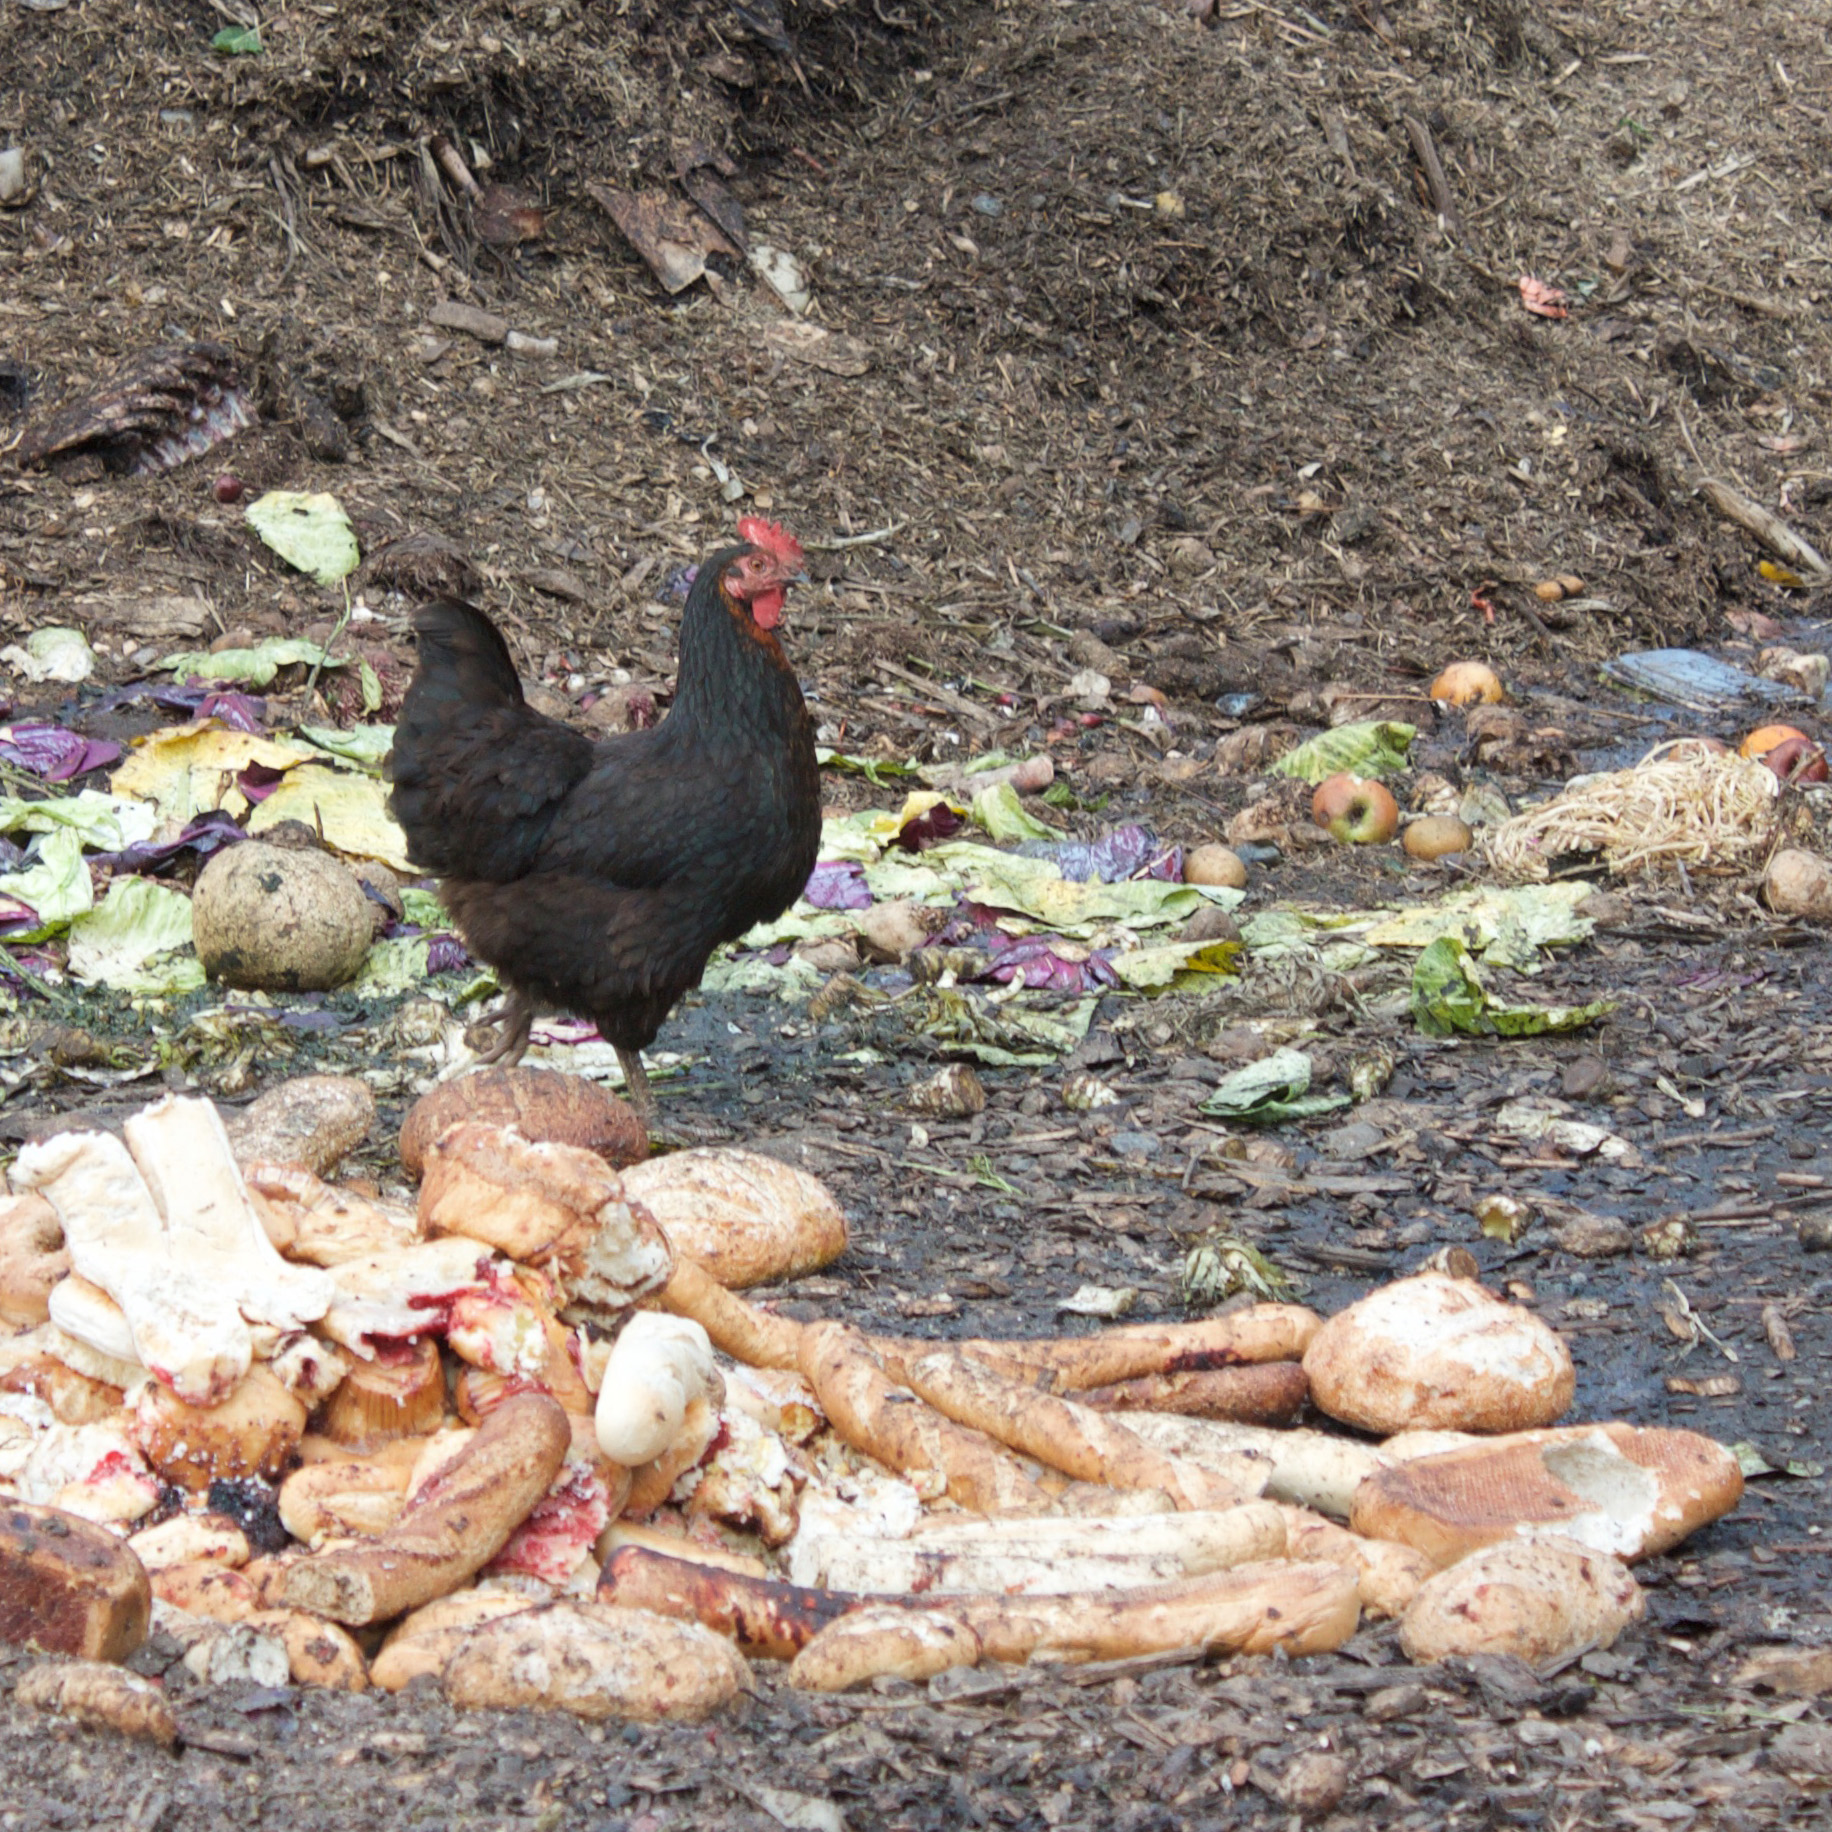 A chicken munches on food scraps at Grow Compost